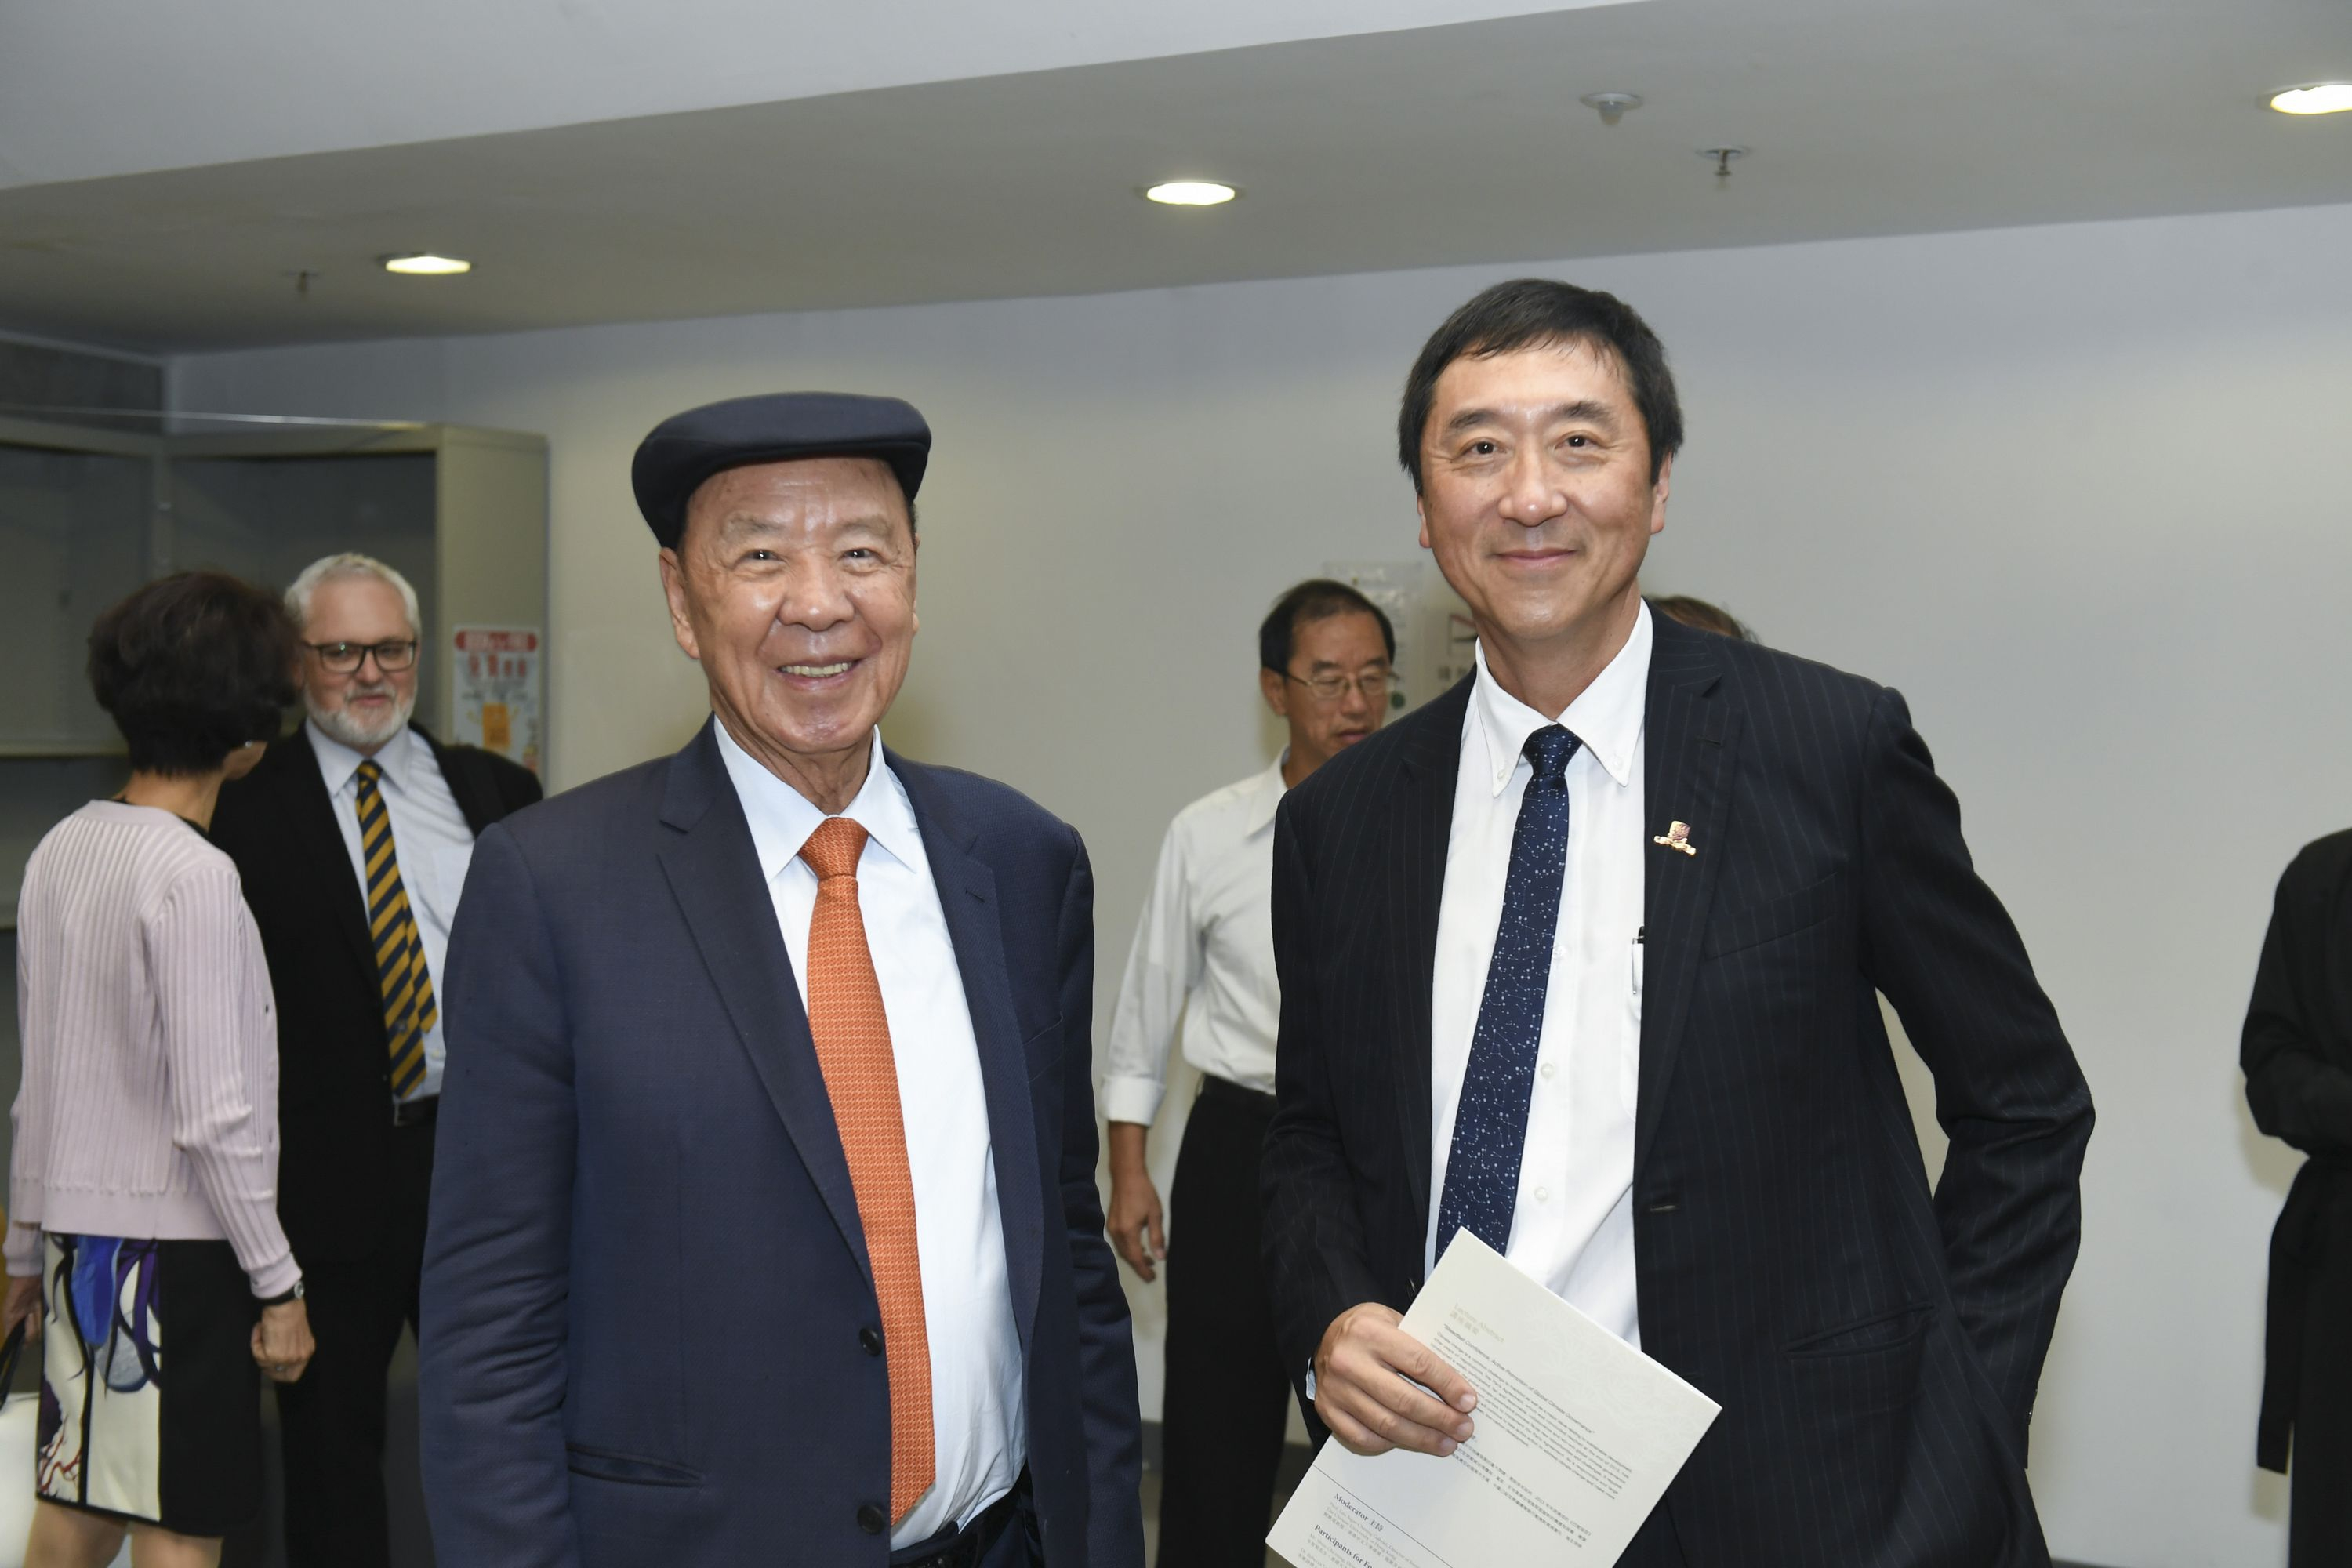 Dr. Lui Che Woo, Founder, LUI Che Woo Prize – Prize for World Civilisation and Prof. Joseph Sung, Vice-Chancellor and President, The Chinese University of Hong Kong.